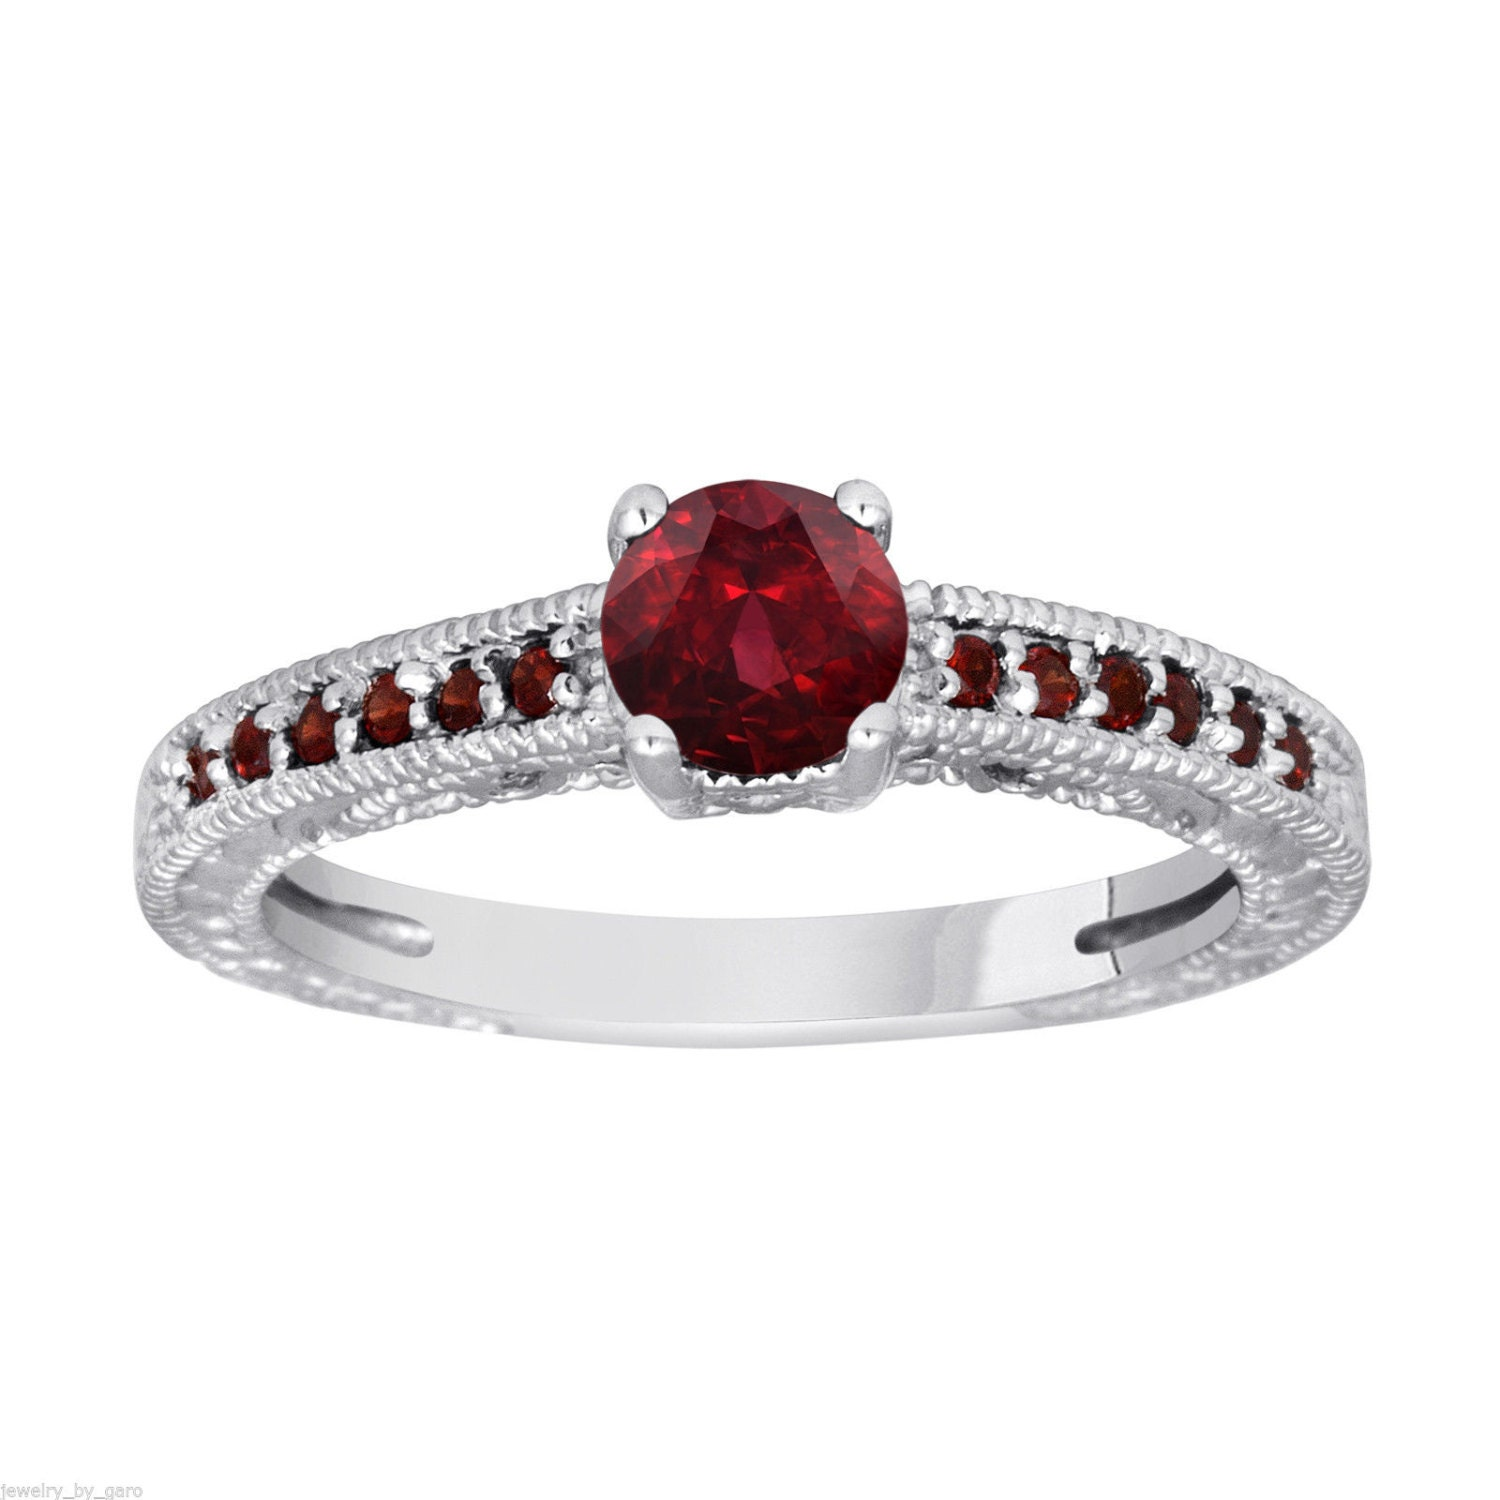 Garnet Ring Bands: Red Garnet Engagement Ring 14K White Gold 1.15 Carat Certified